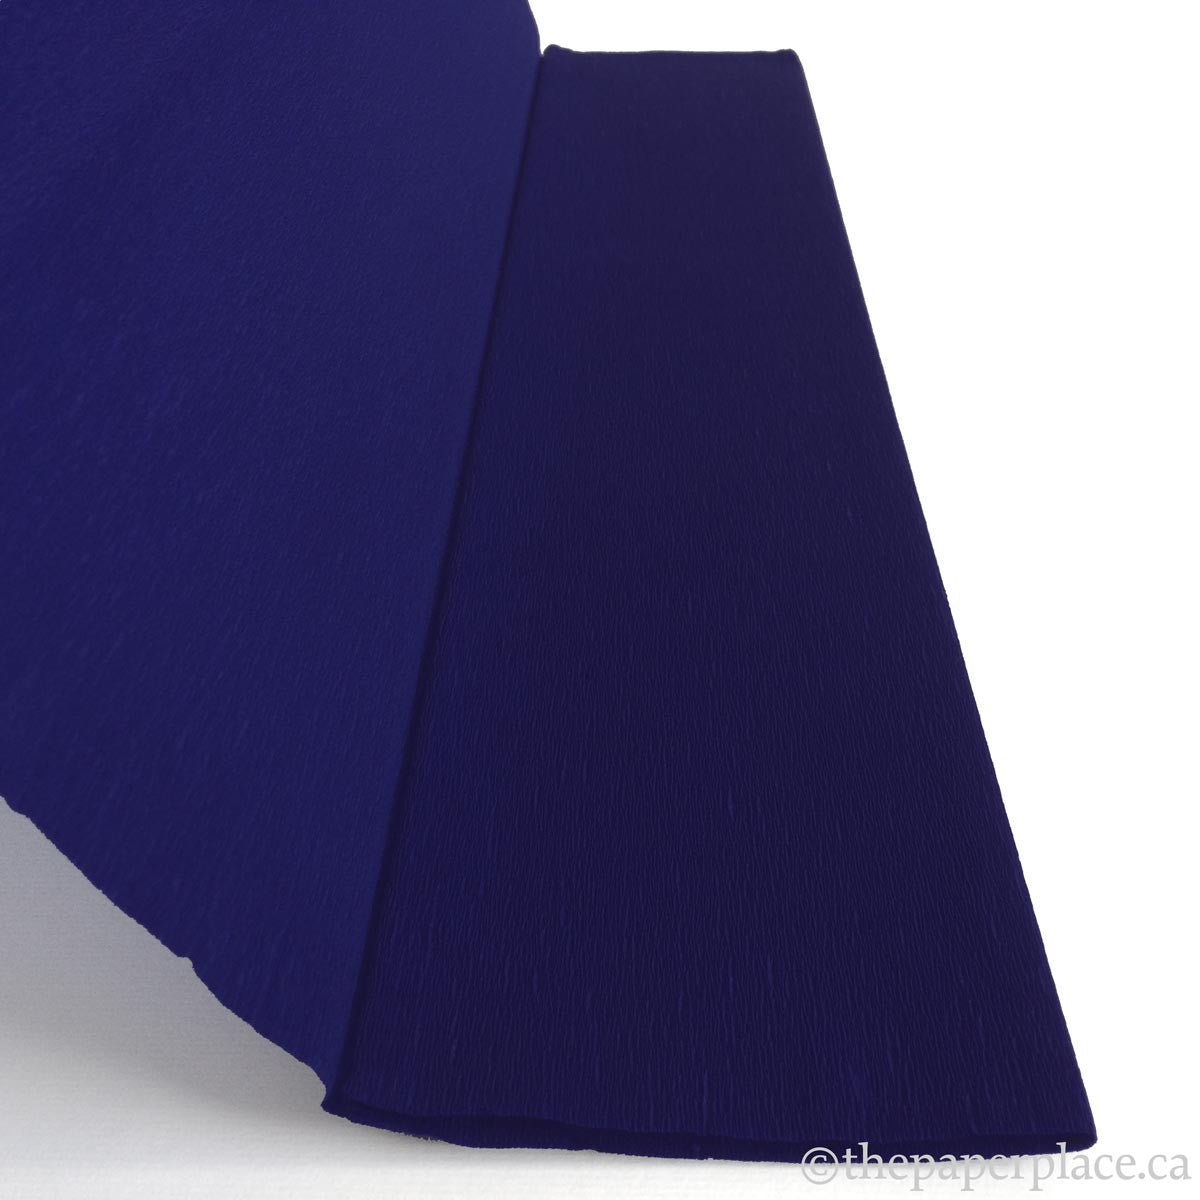 Single-Sided Crepe - Midnight Blue